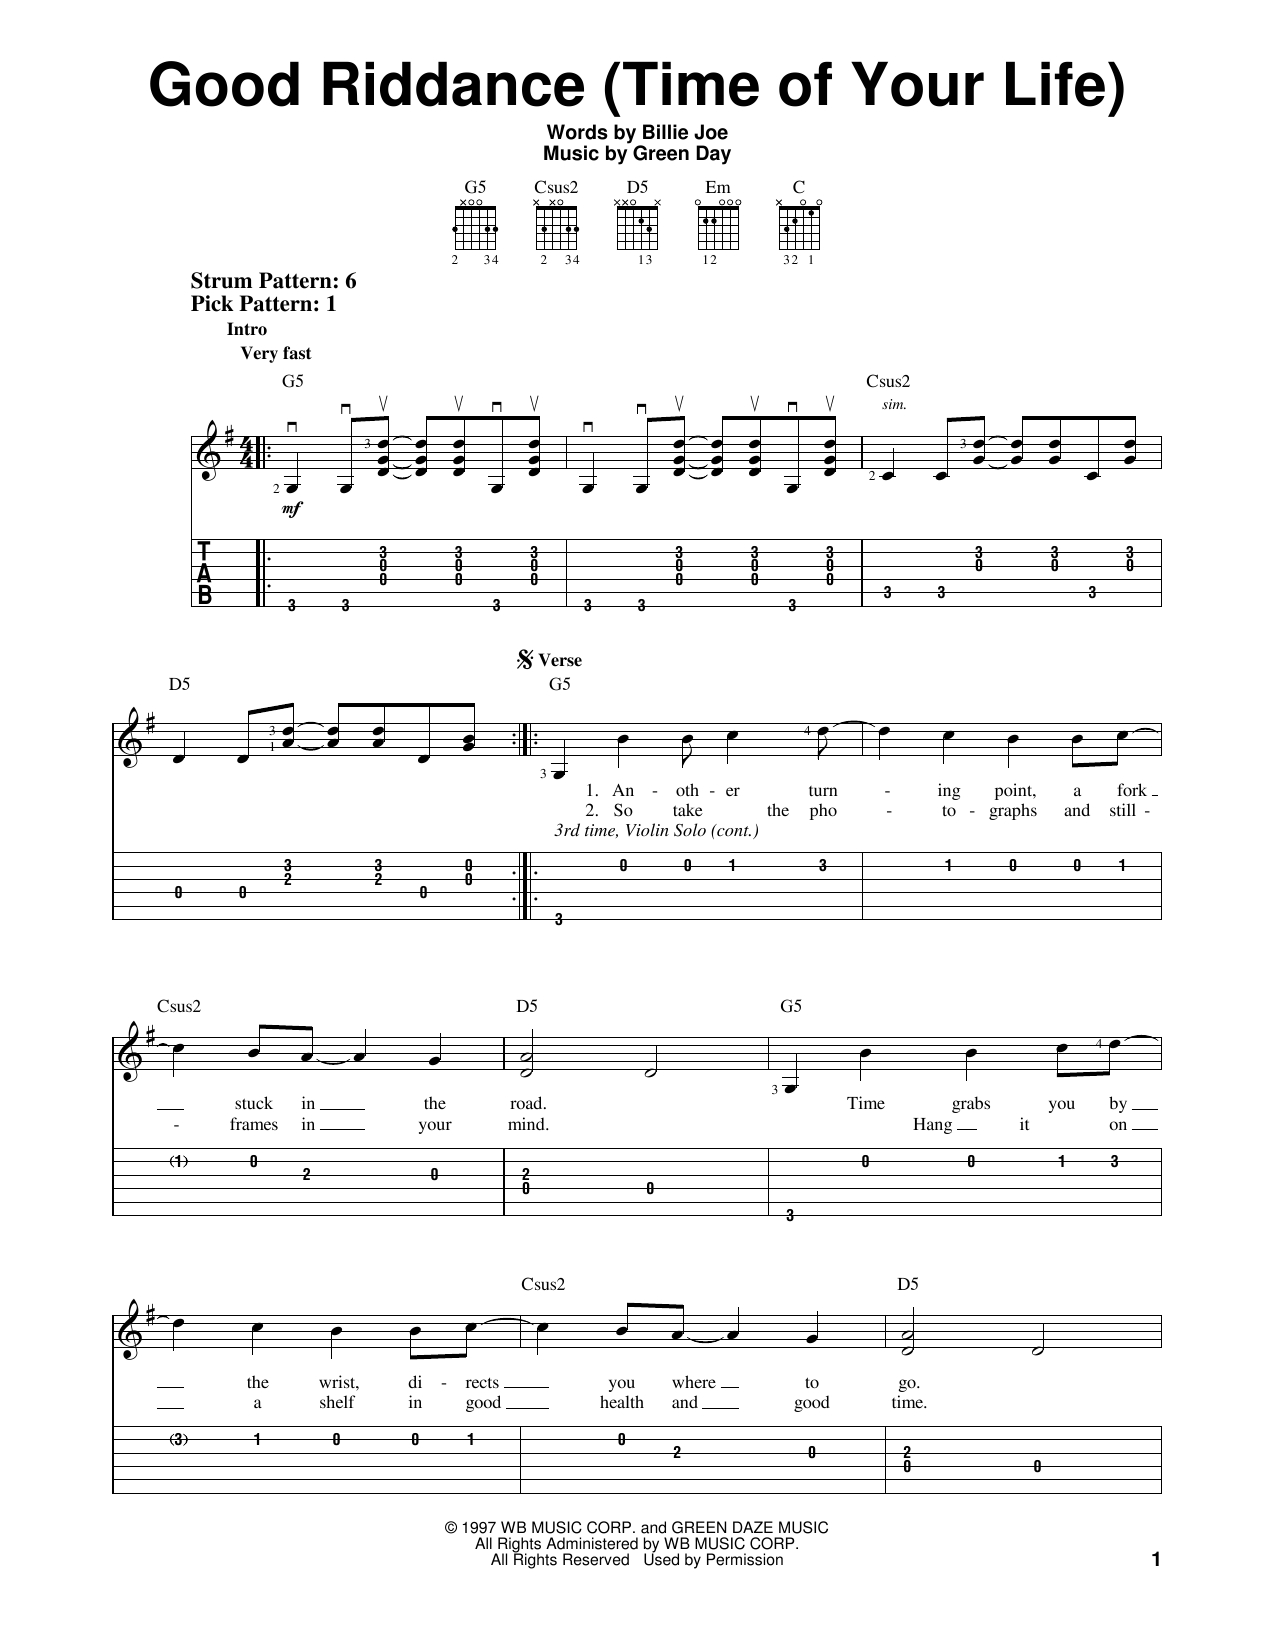 Good Riddance Chords Sheet Music Digital Files To Print Licensed Green Day Digital